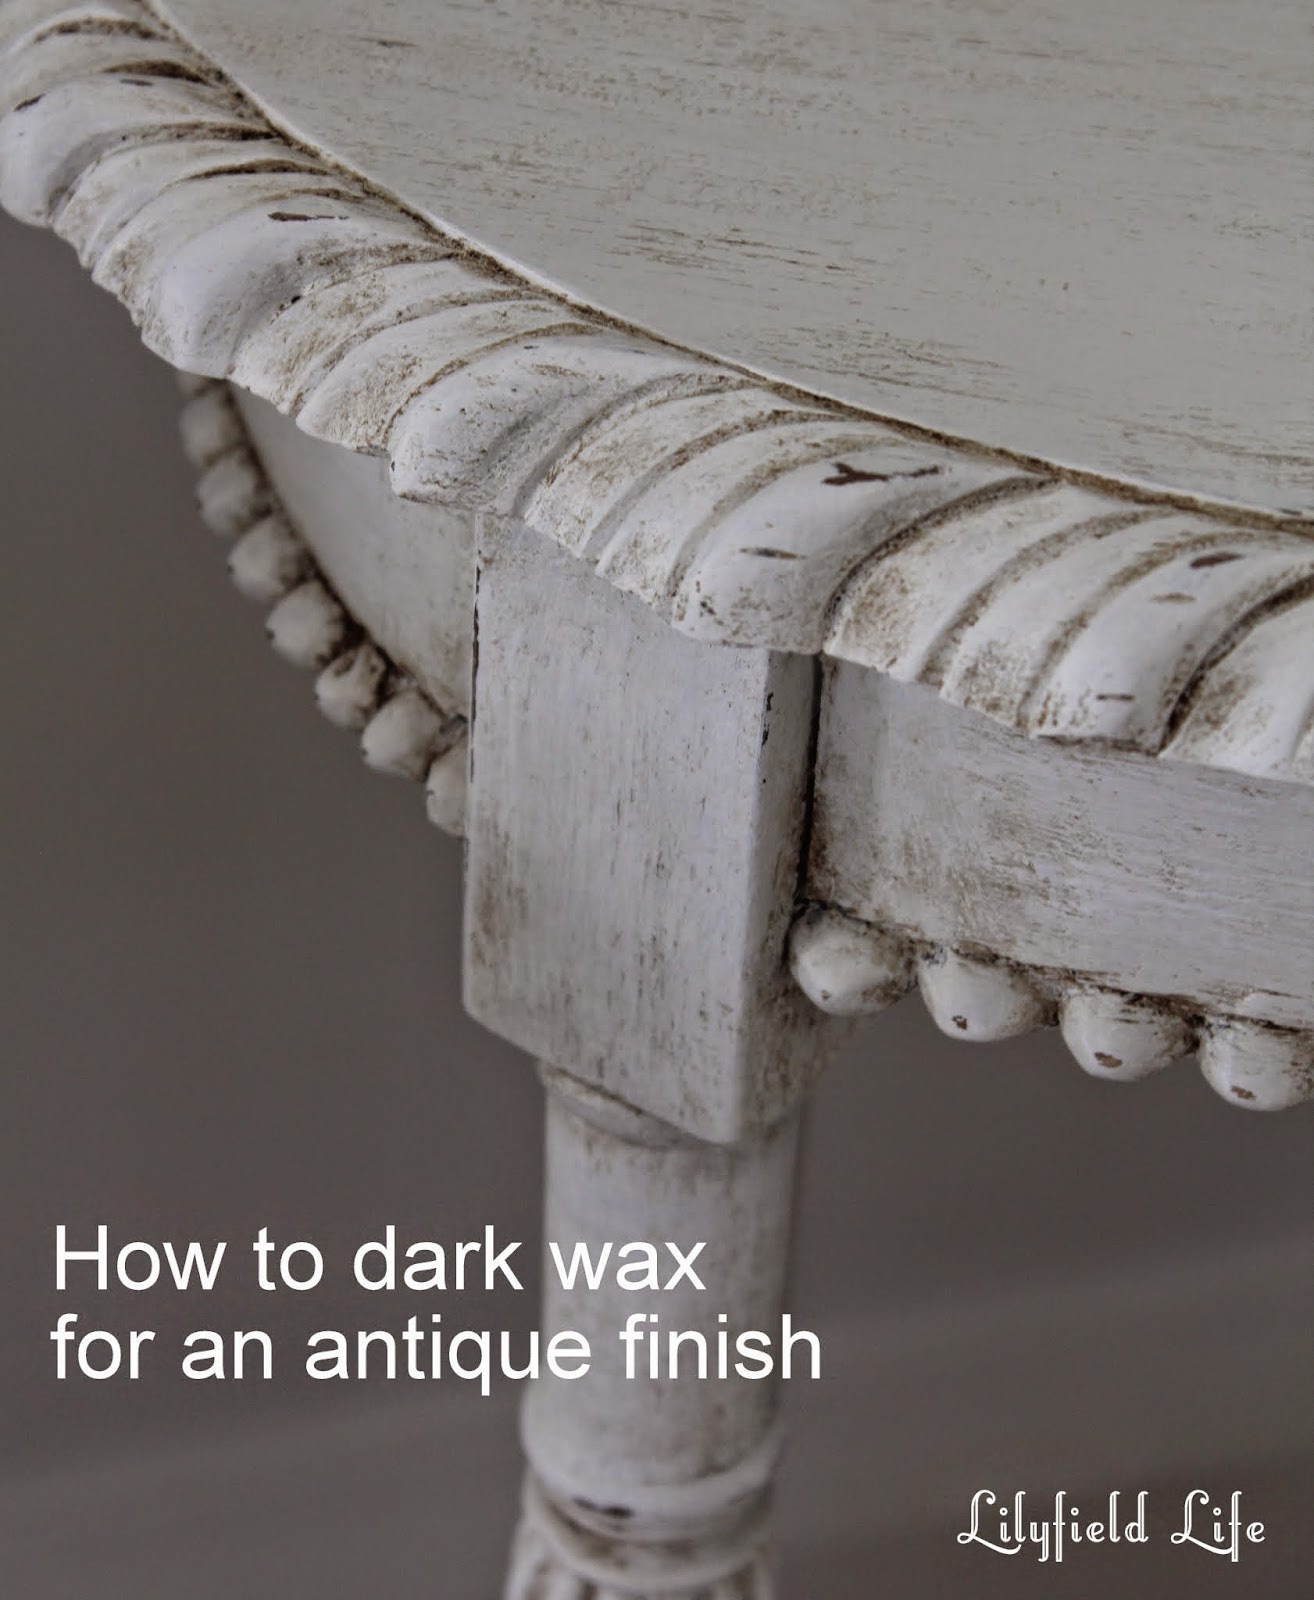 How to Antique White Furniture Unique Lilyfield Life Starters Guide How to Antique Painted